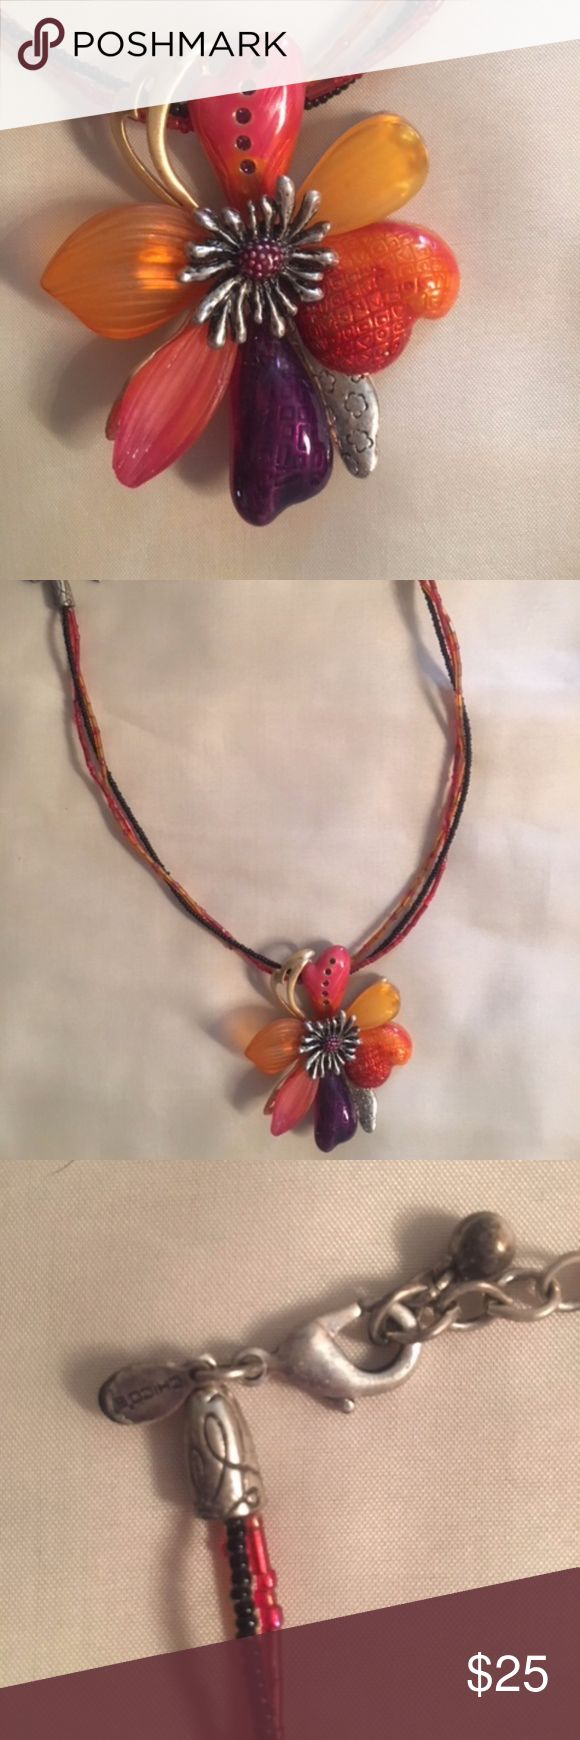 Chico's Enamel Flower pendant Necklace Statement enameled flower pendant on multi strand beaded wire with a claw clasp (Chico's tag), in shades of coral pink, purple, orange and golden yellow. Chico's Jewelry Necklaces